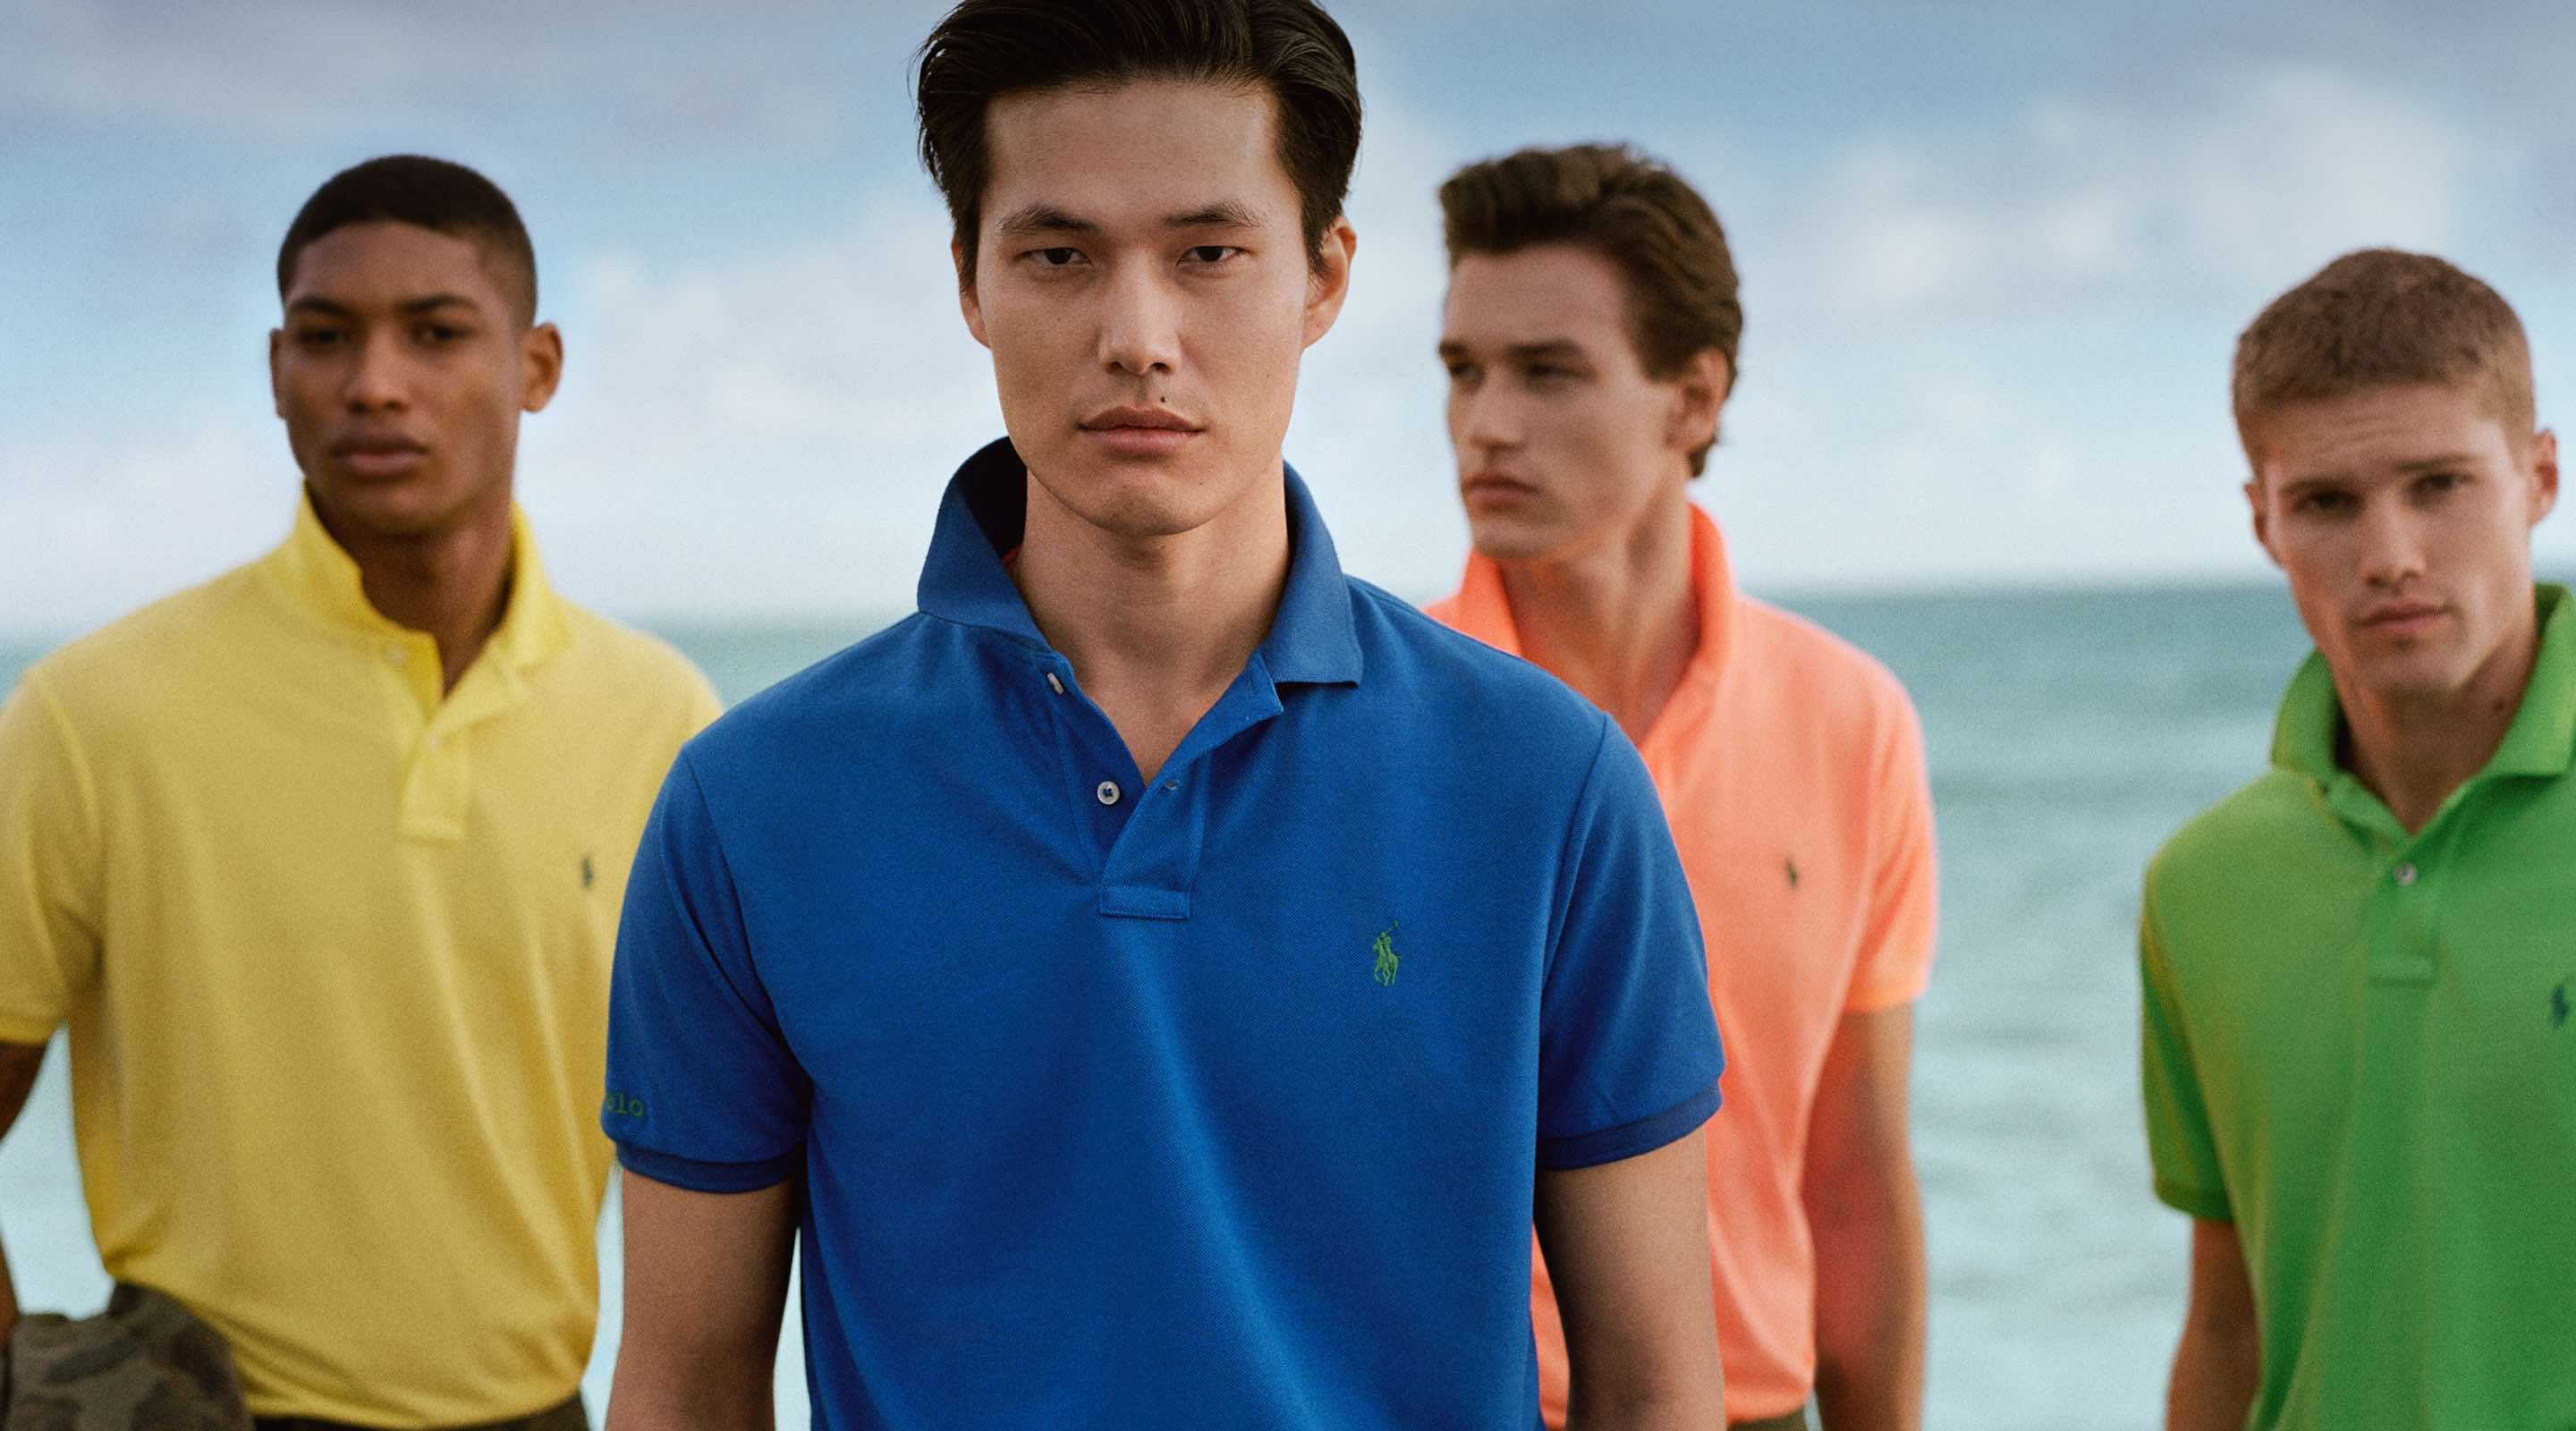 Men in colorful Polo shirts by the ocean